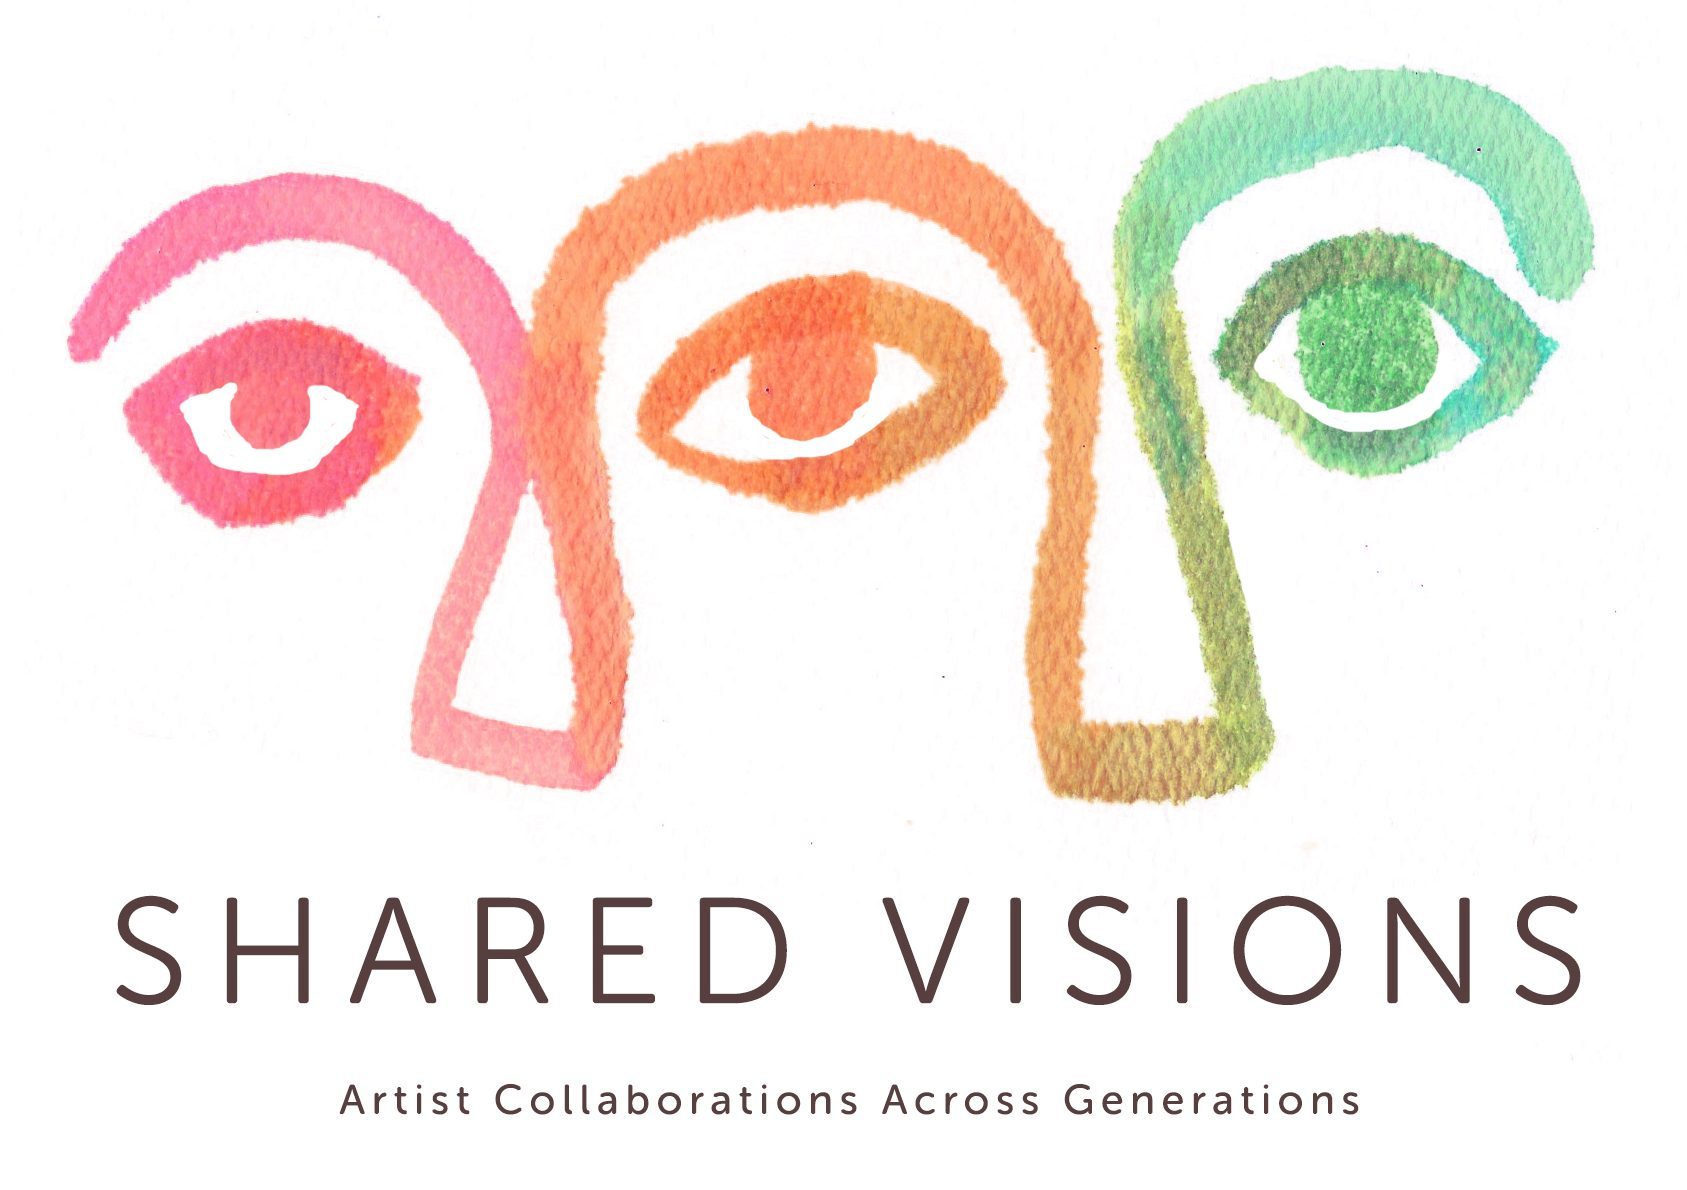 shared visions graphic